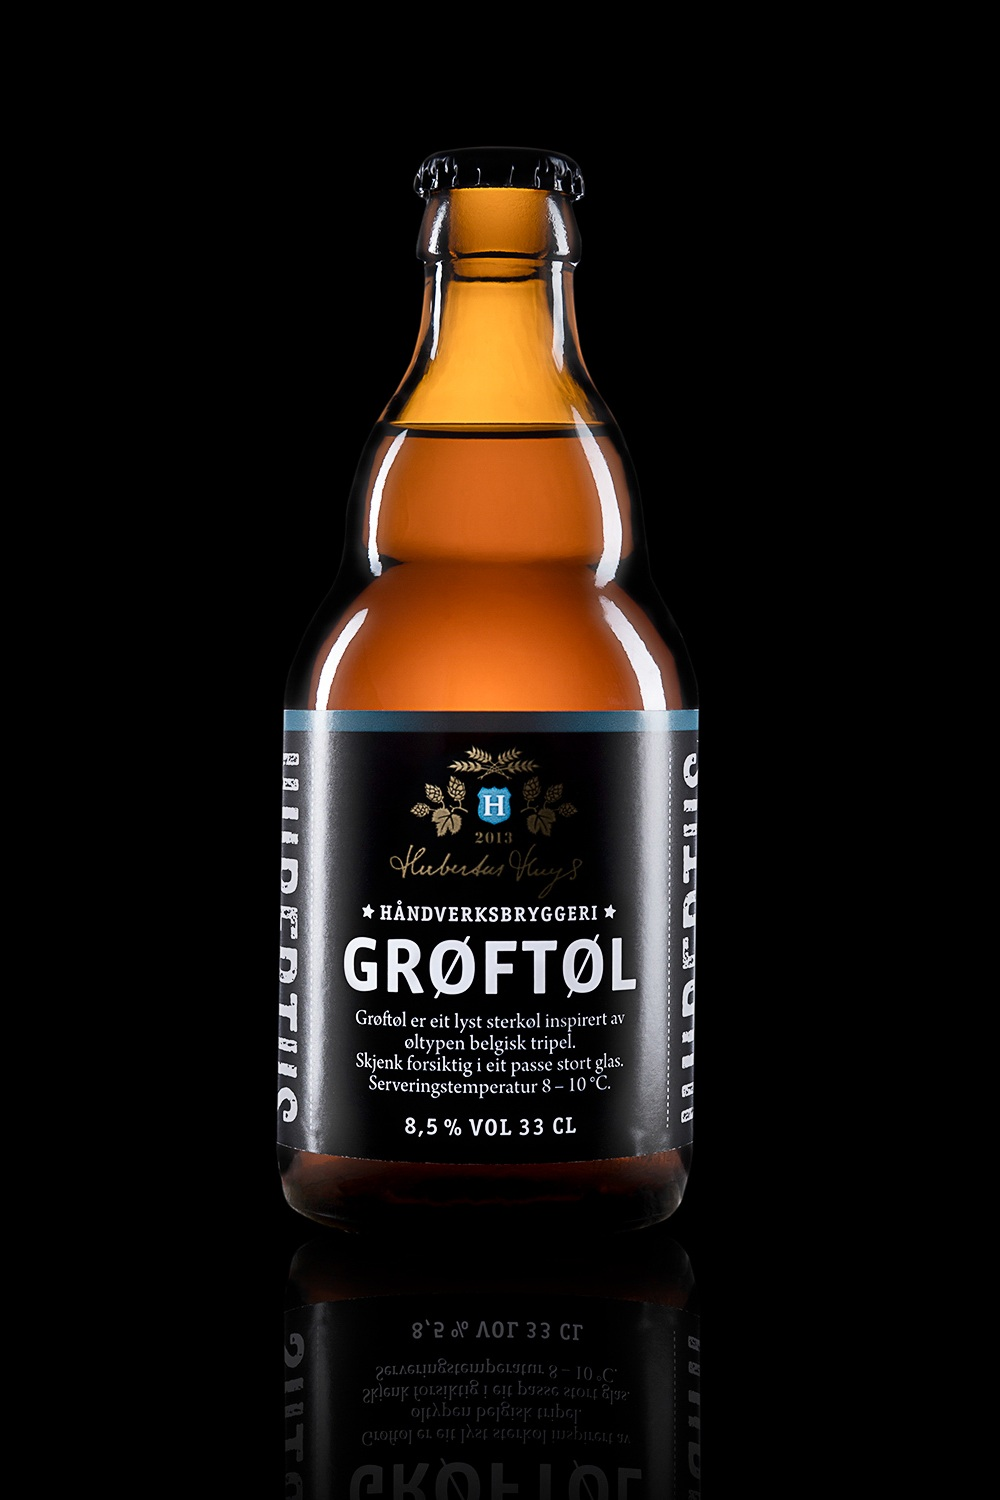 Grøftøl - Type: Belgian Tripel.Color: Light.Aroma: Fruity, rich and complex.Flavor: Fruity.Contents: Alcohol 8,5%.Food pairing: Cheese, tart desserts with berries and fruit, pork and chicken.Vinmonopolet